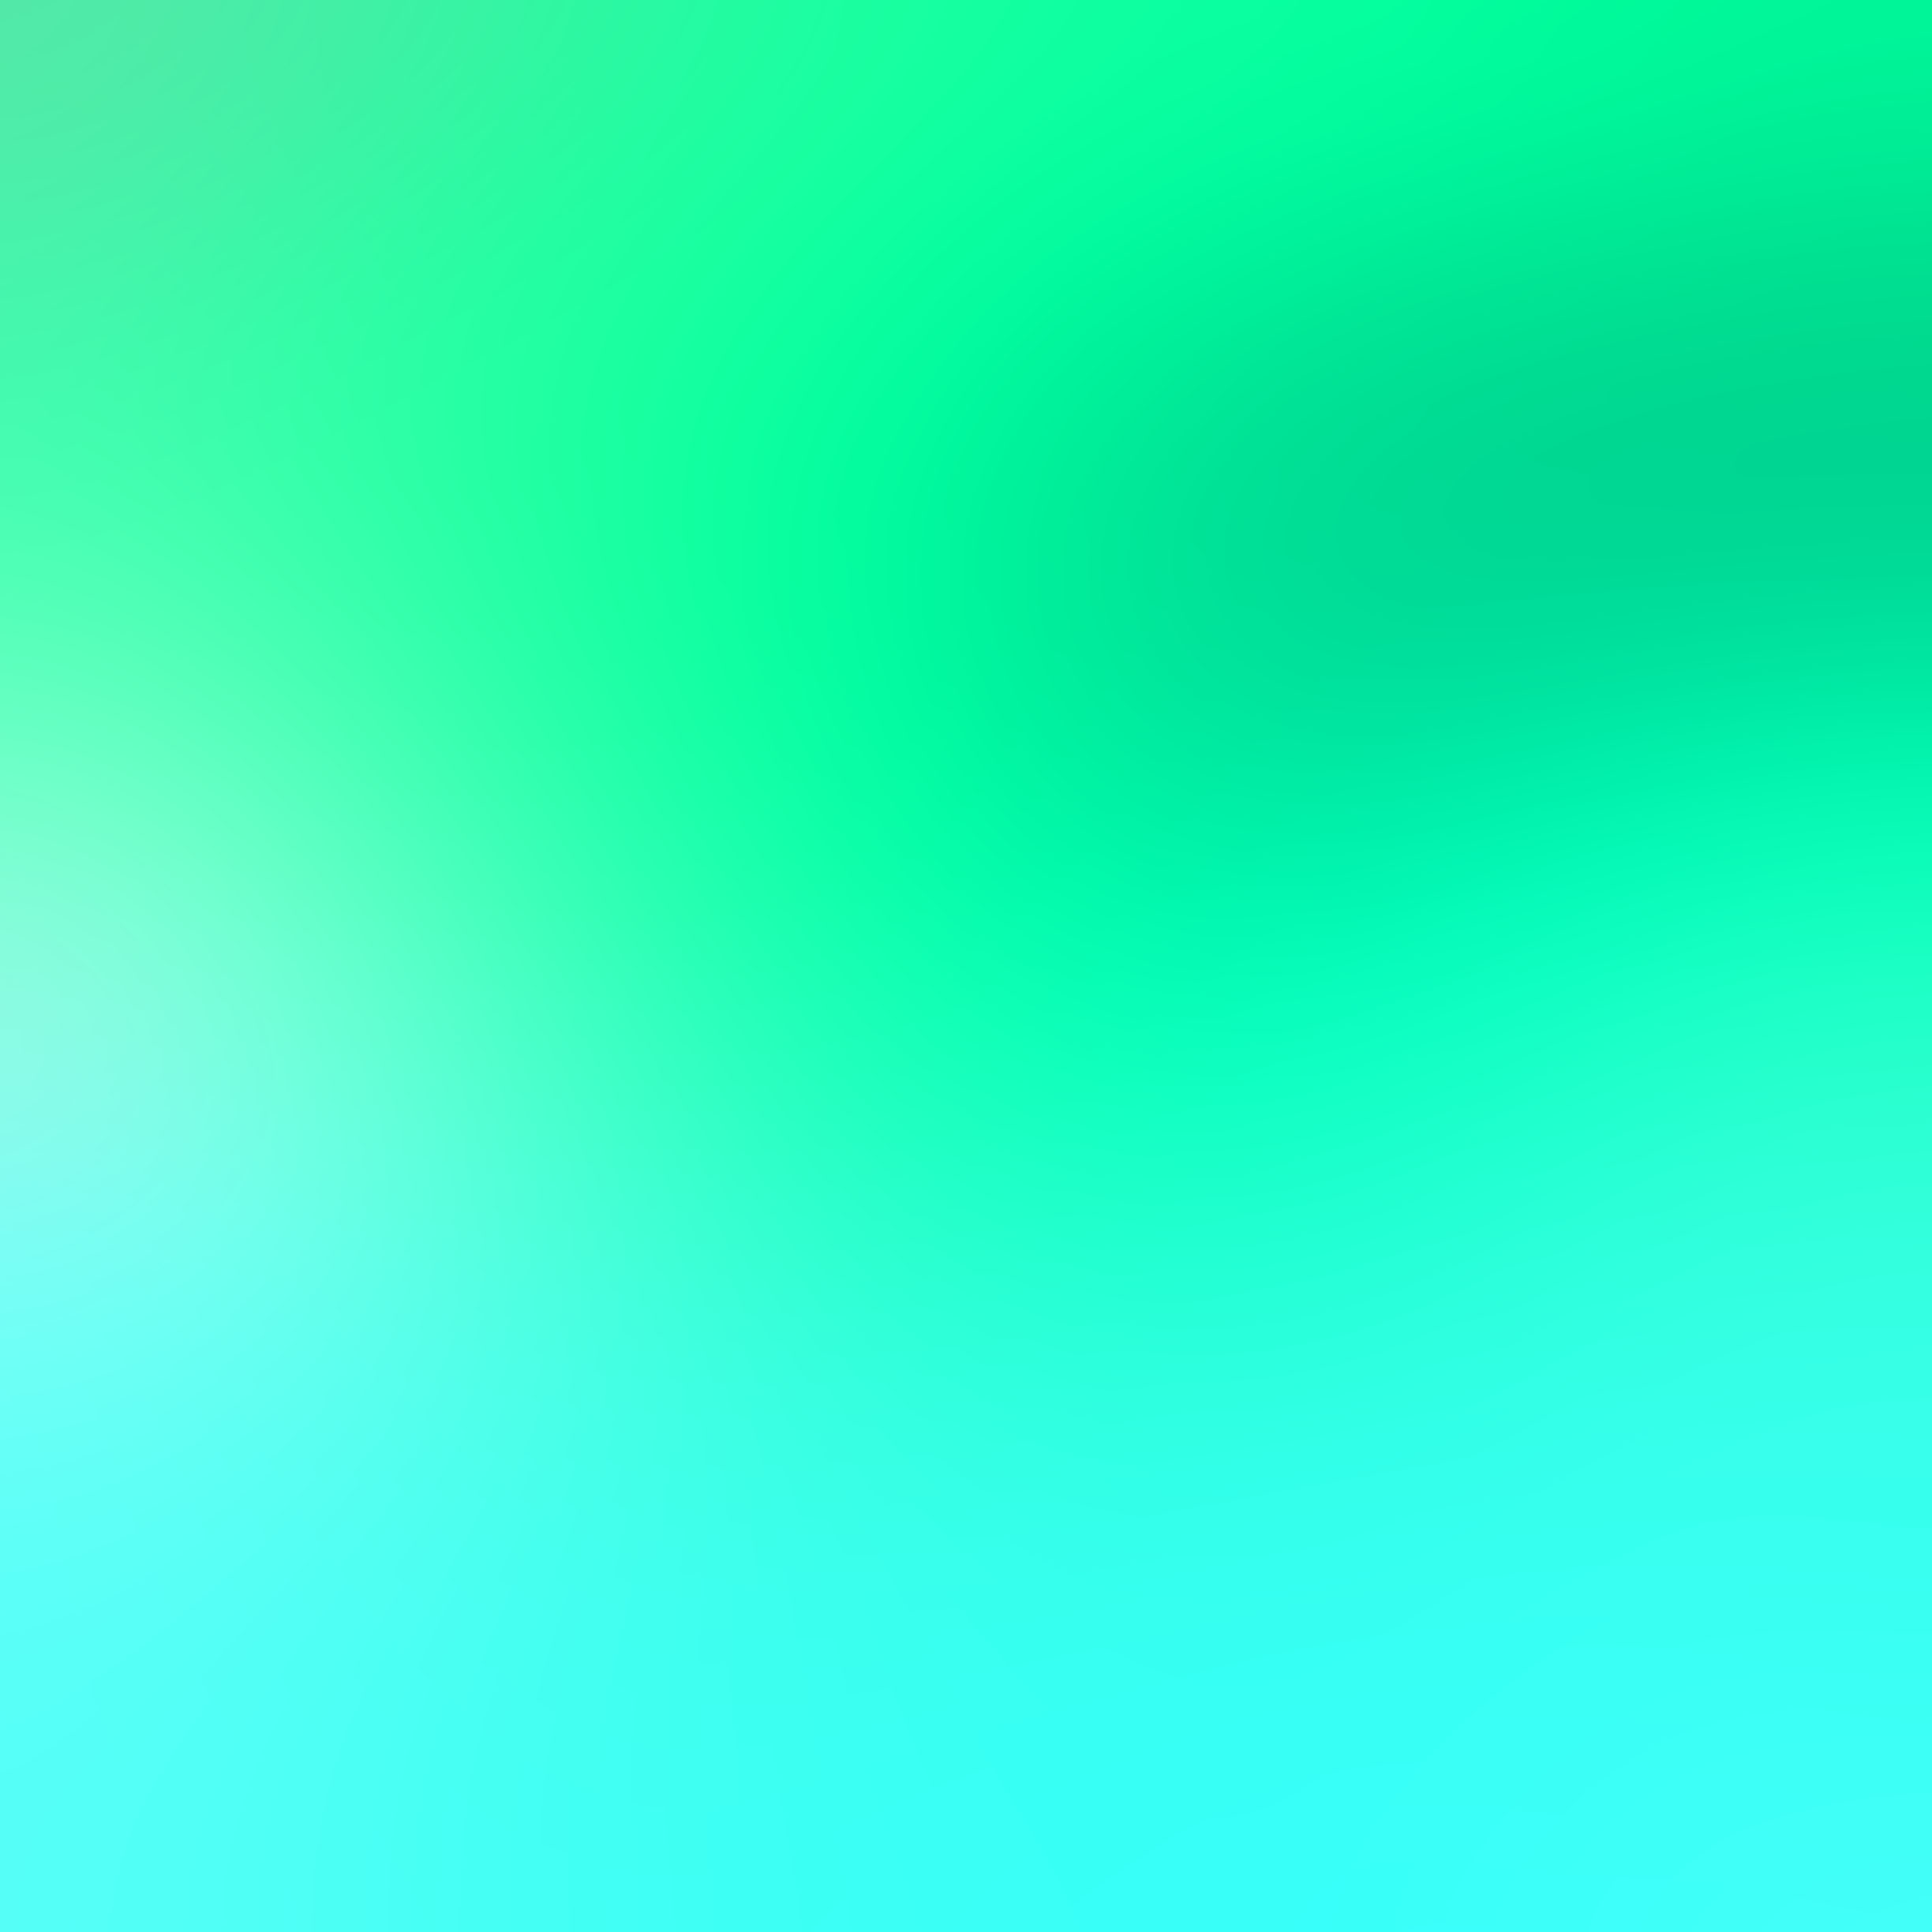 Teal and Neon Green Backgrounds 2448x2448